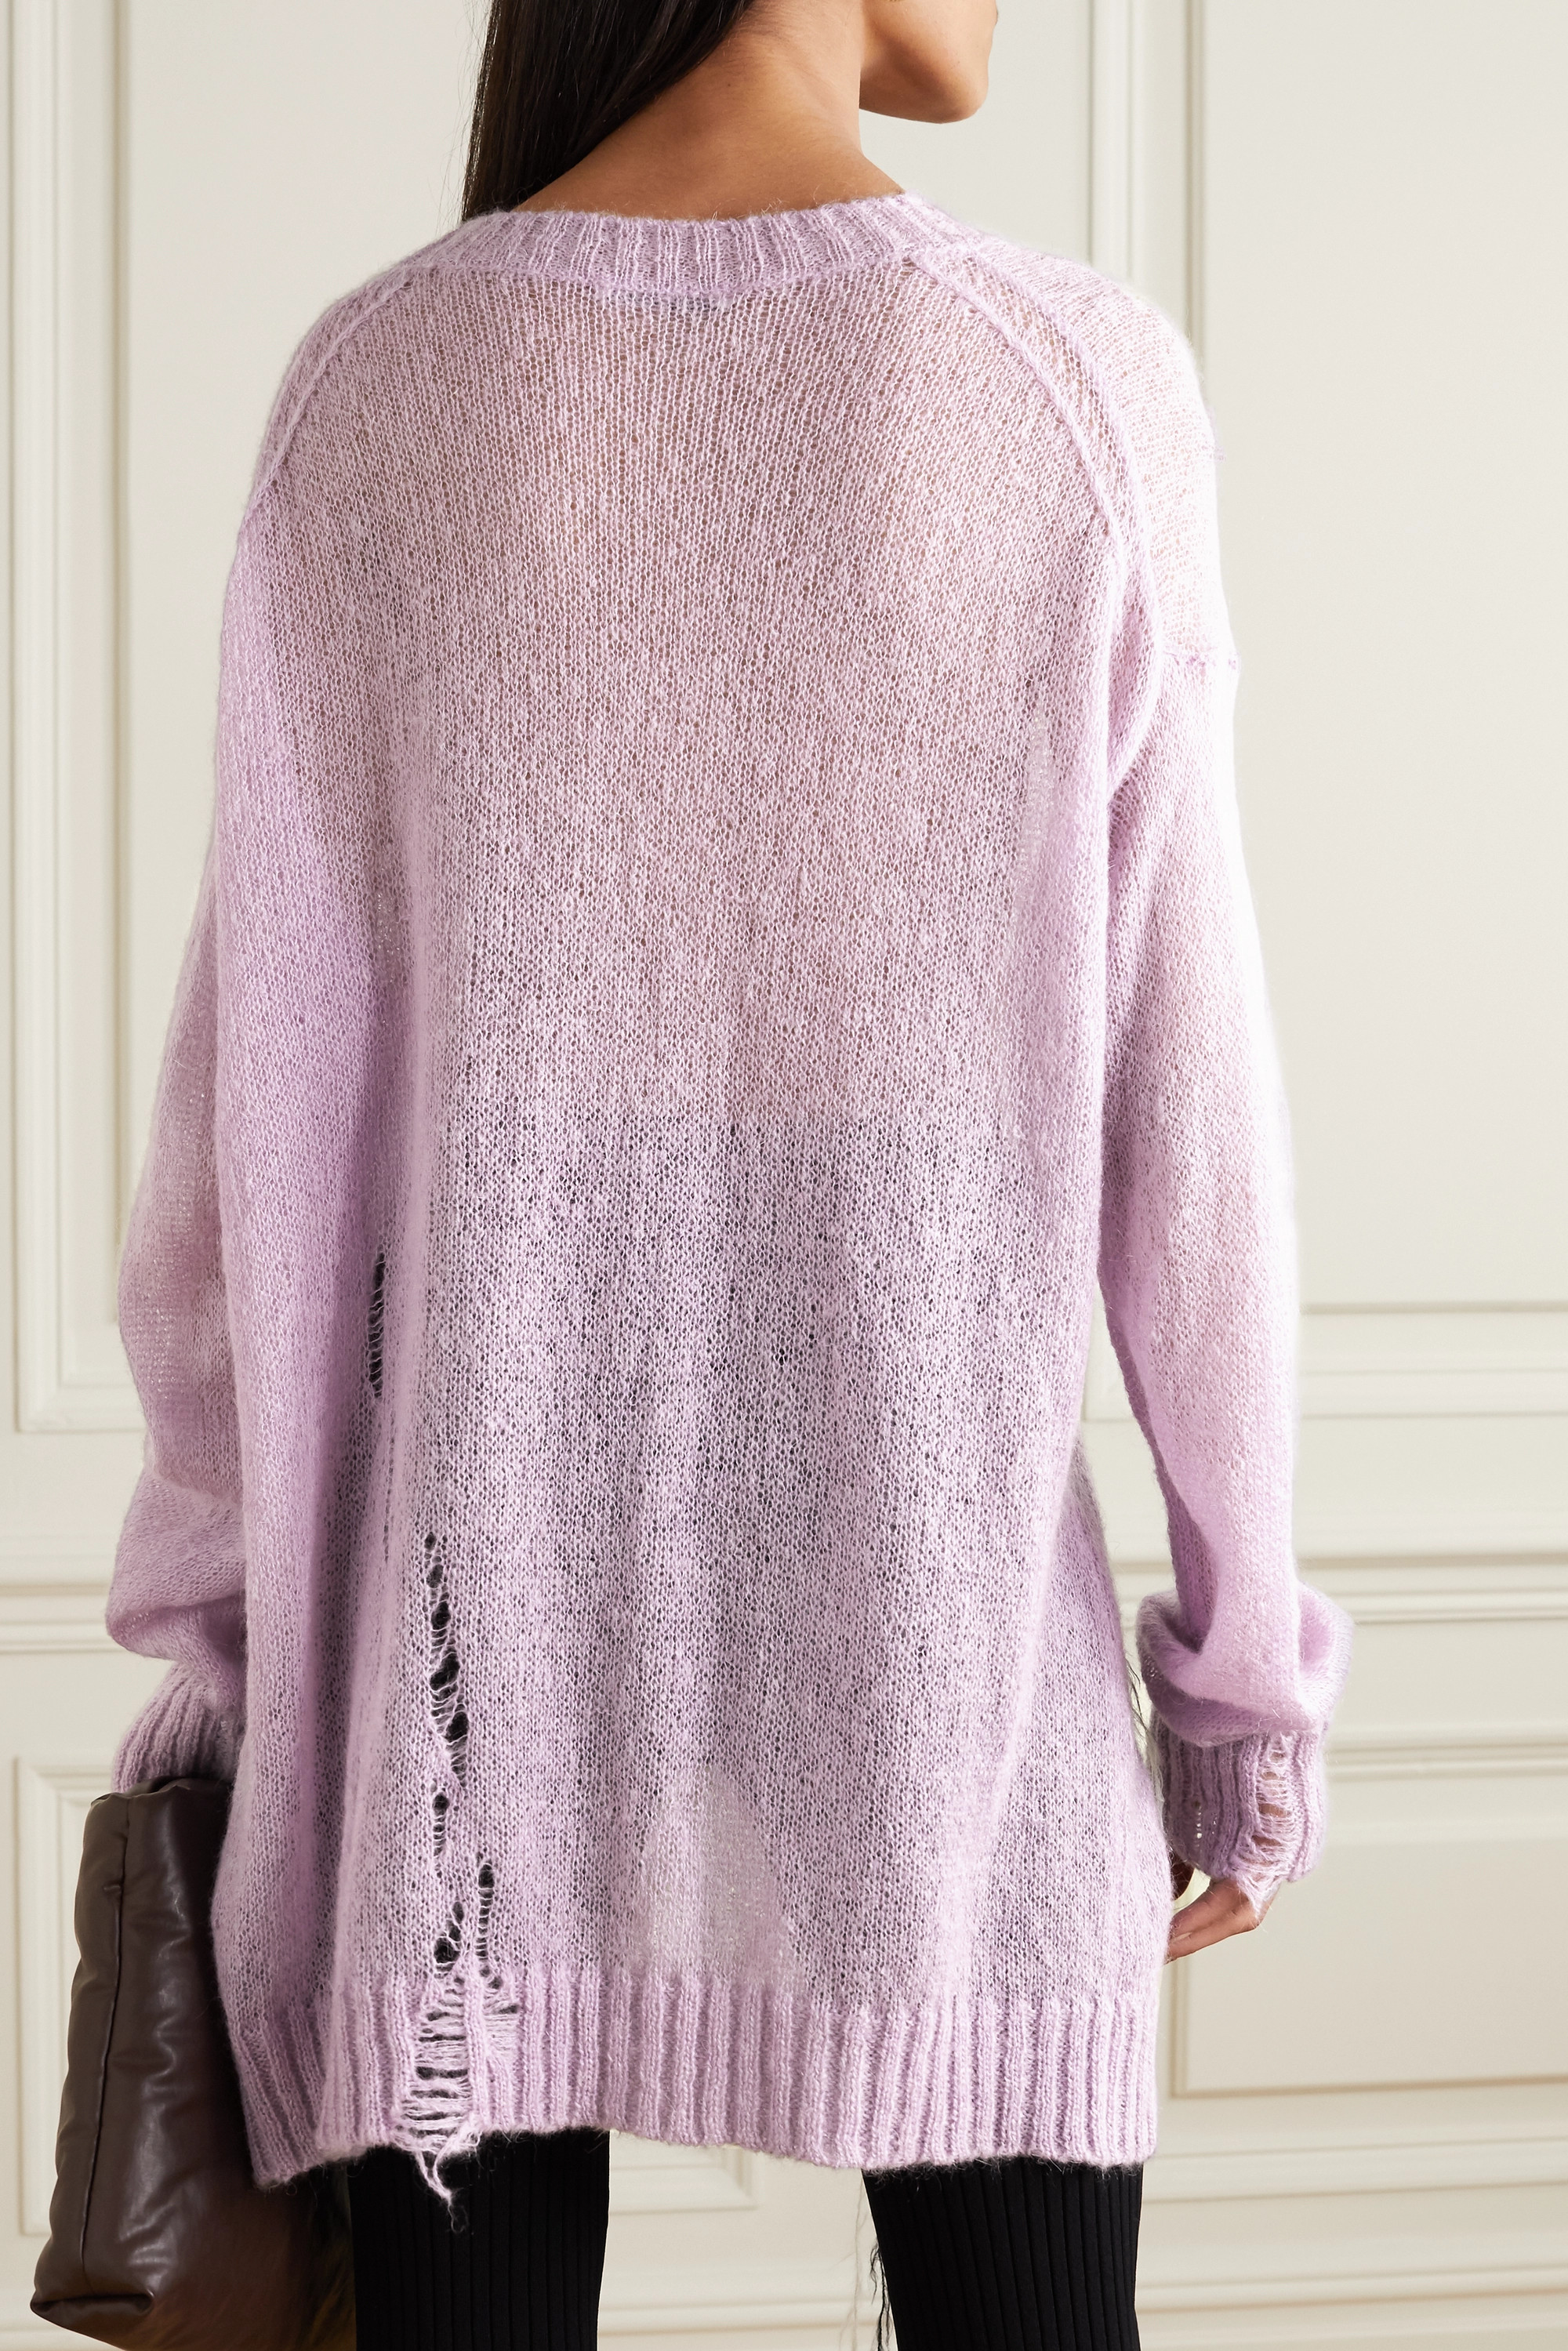 Acne Studios Oversized distressed argyle knitted sweater